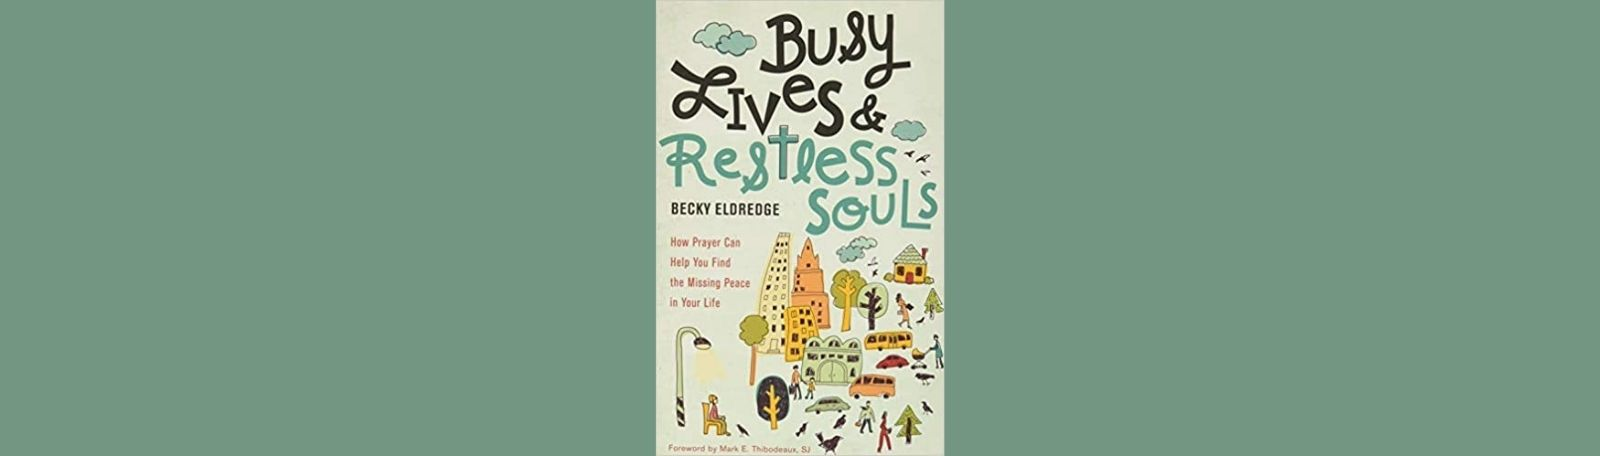 """Featured image for """"Busy Lives & Restless Souls"""""""